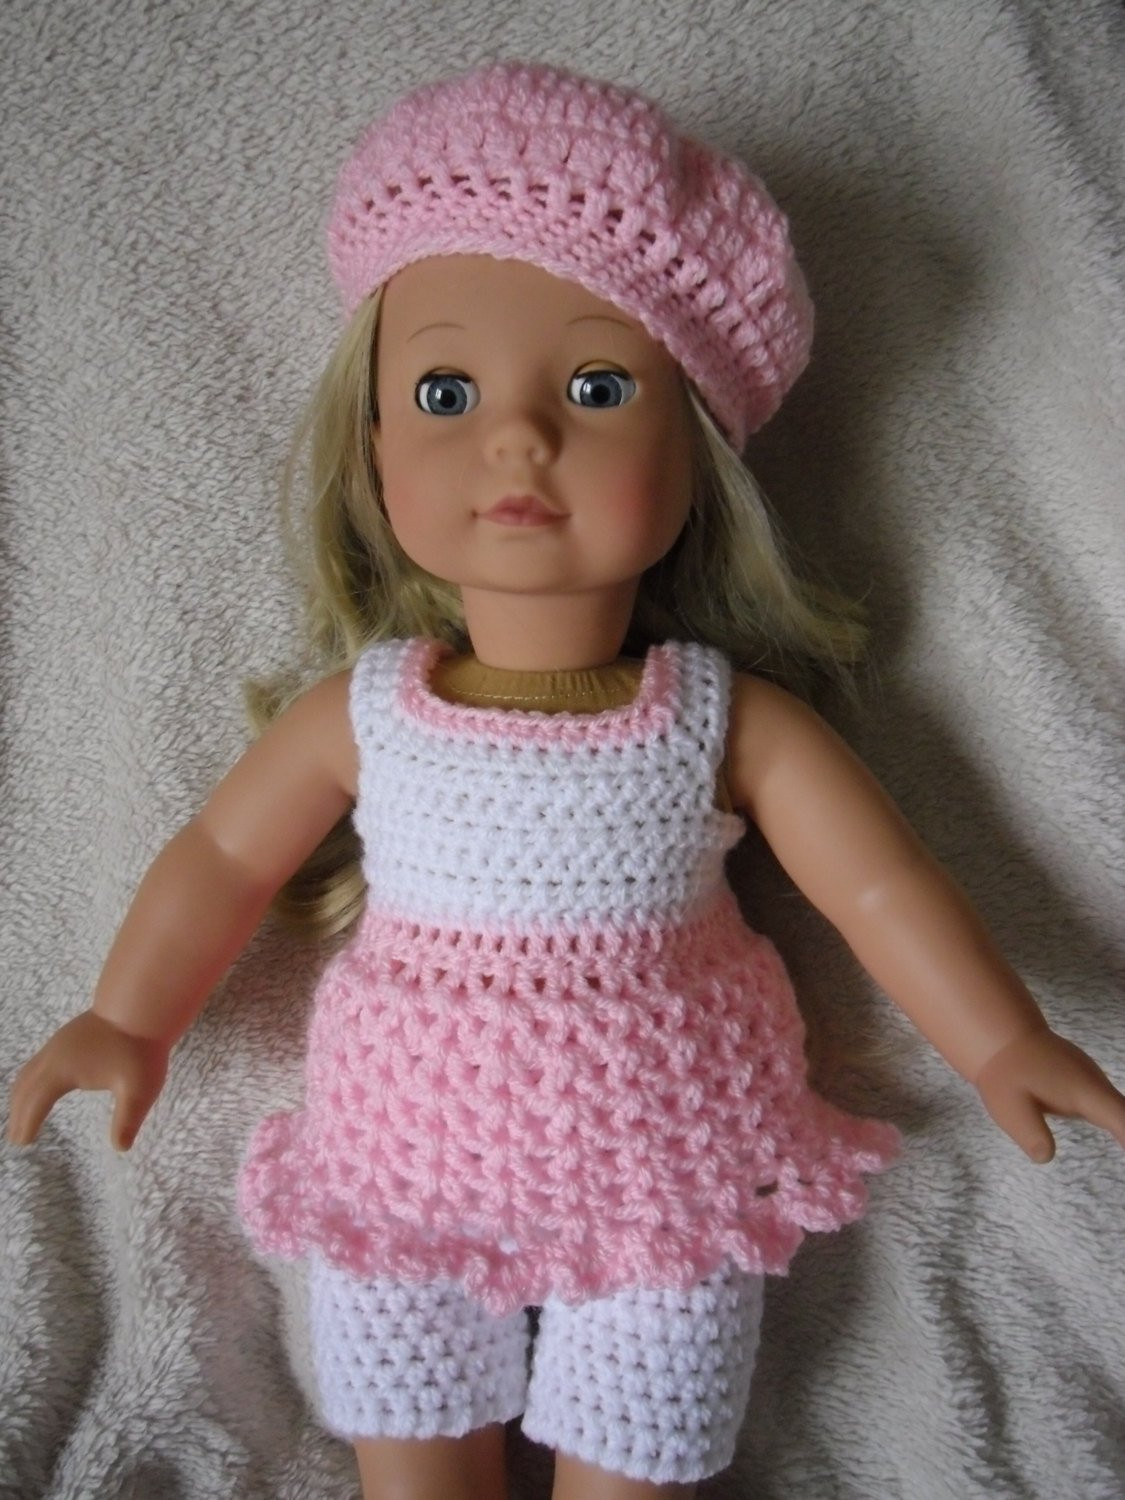 Crochet pattern for dress shorts and hat for 18 inch doll